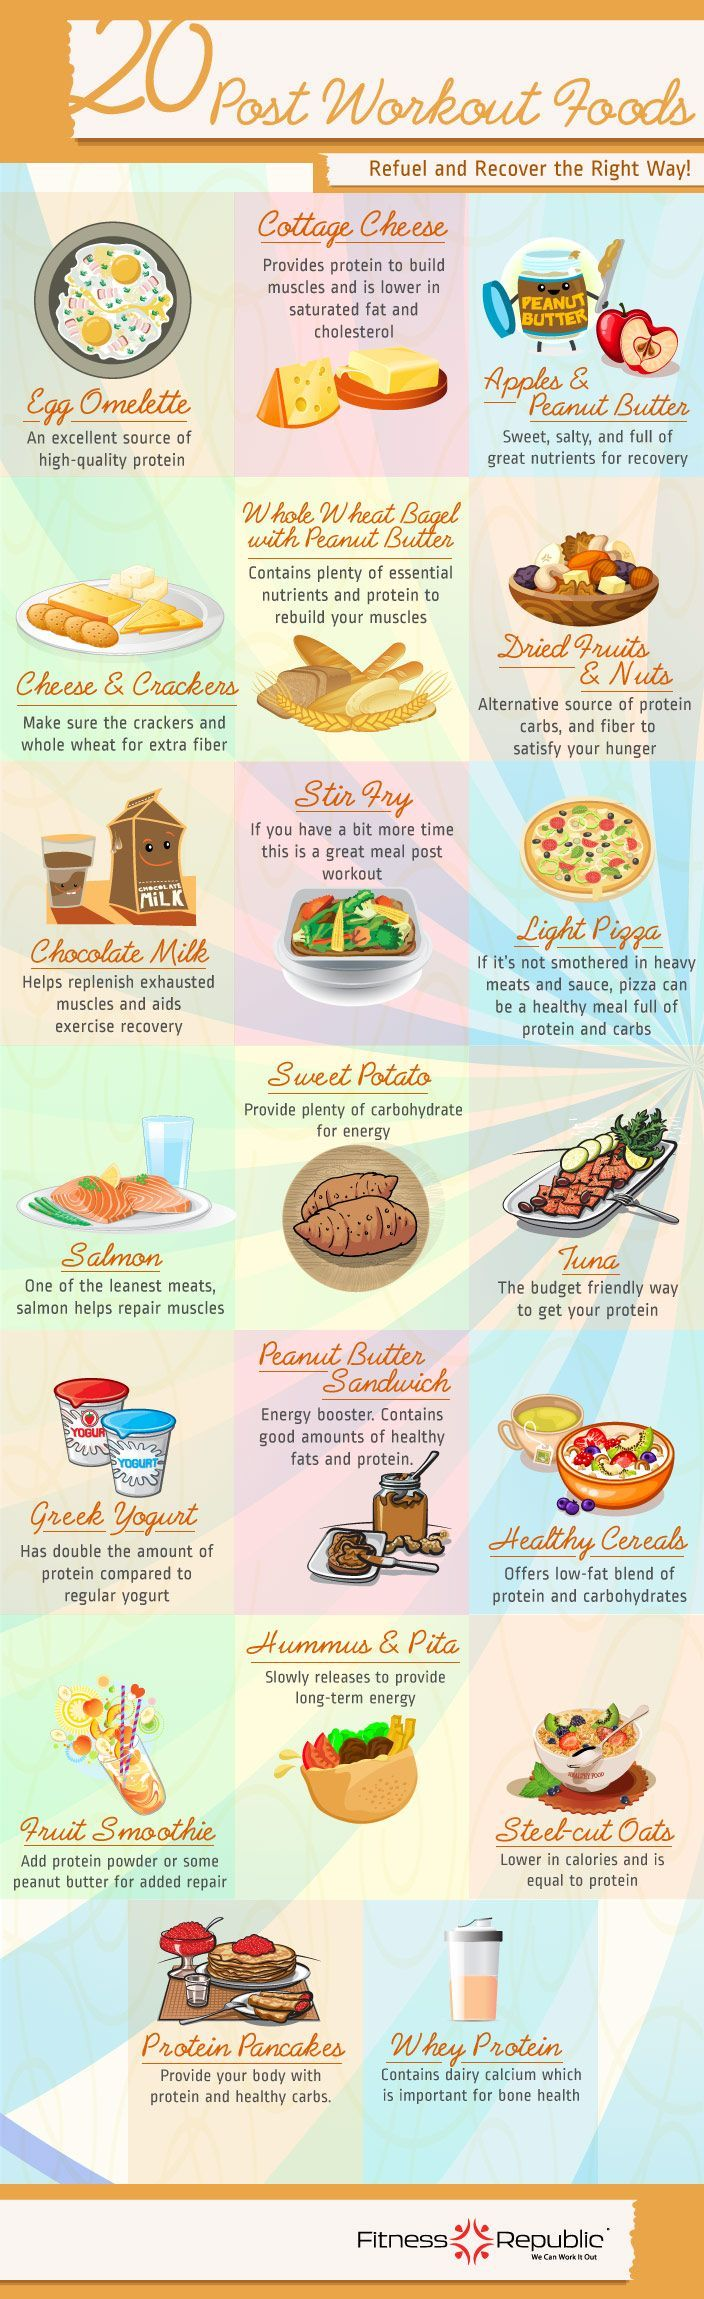 Best 25+ Post workout nutrition ideas on Pinterest | Pre workout ...